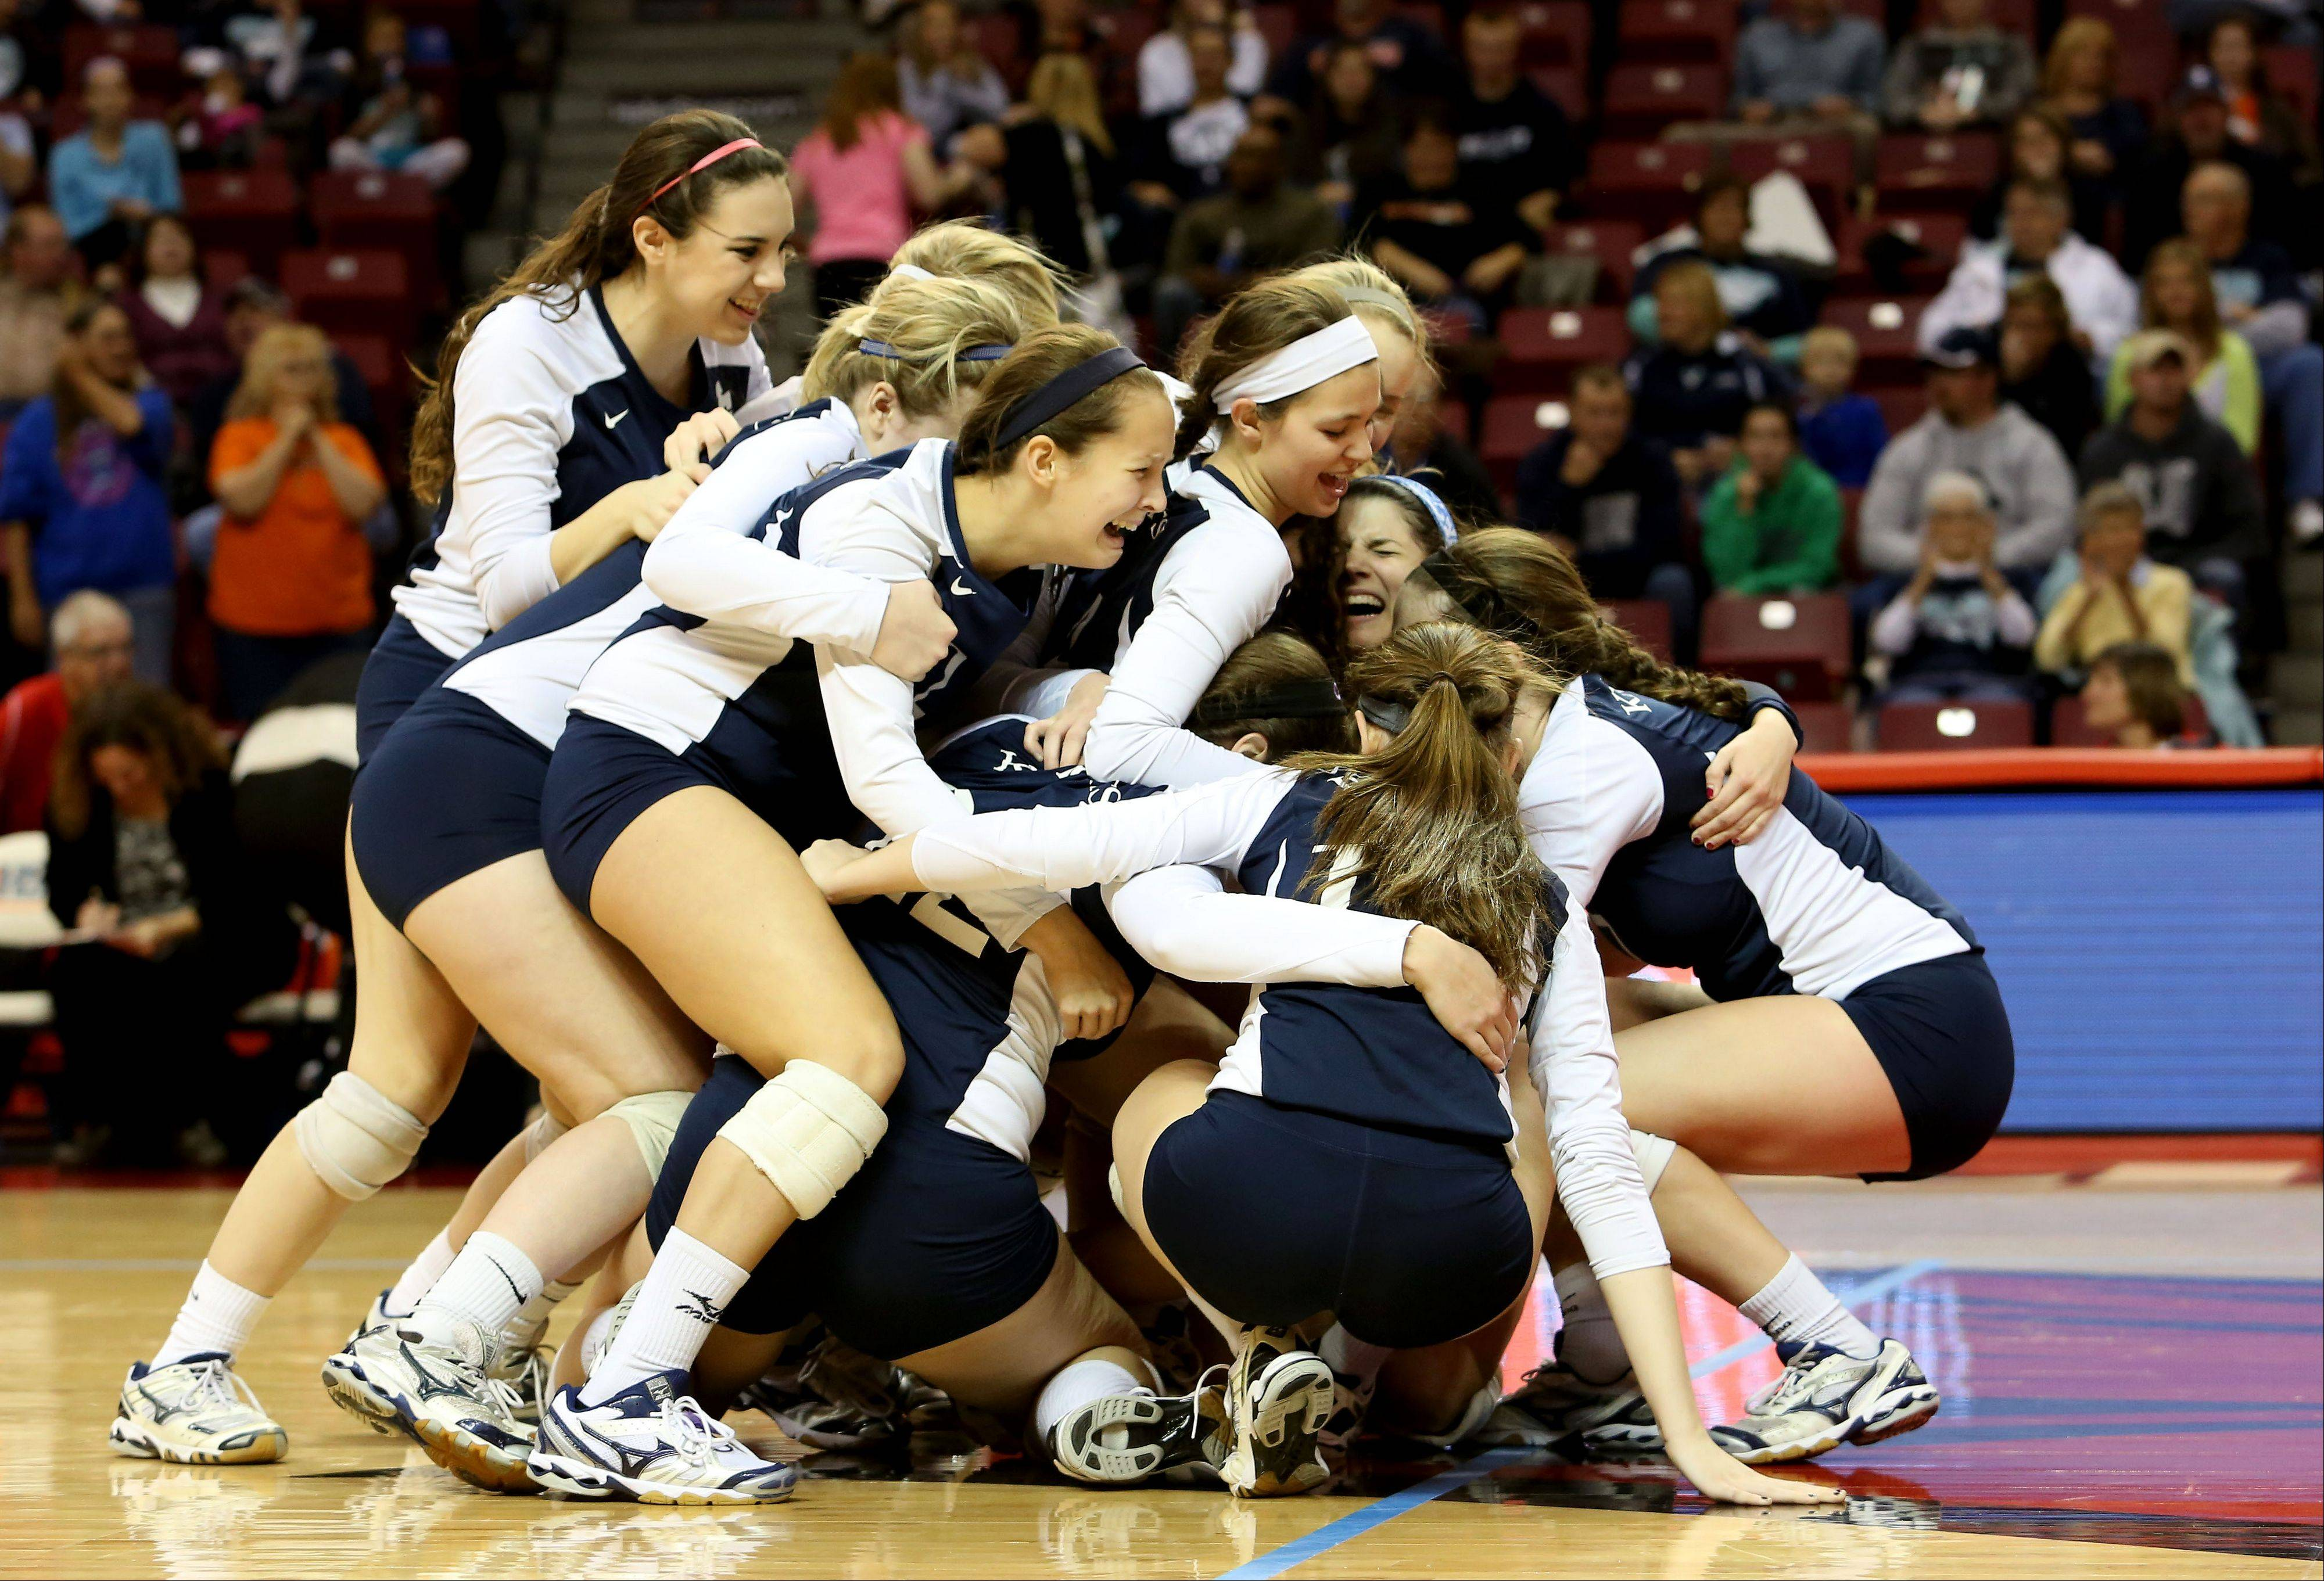 IC Catholic players celebrate after beating Edwards County for the Class 2A volleyball championship Saturday in Normal.